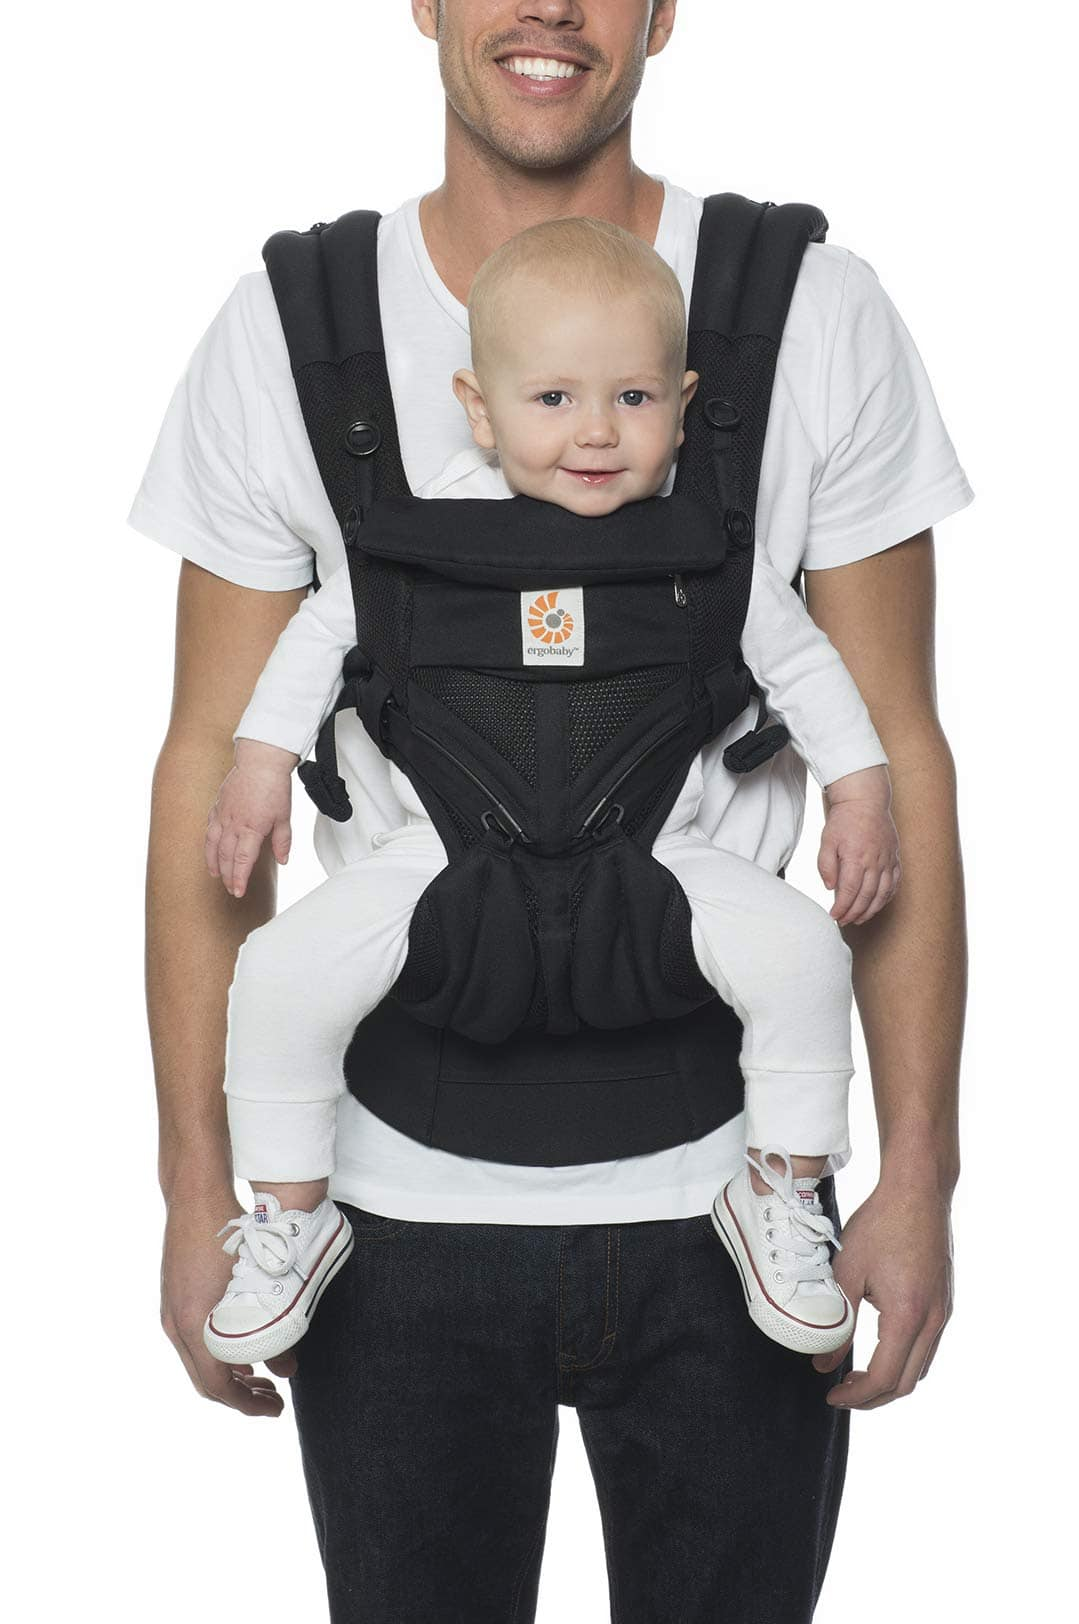 Ergobaby Omni 360 All-Position Baby Carrier for Newborn to Toddler with Lumbar Support & Cool Air Mesh (7-45 Lb), Onyx Black - $107.99 at Amazon